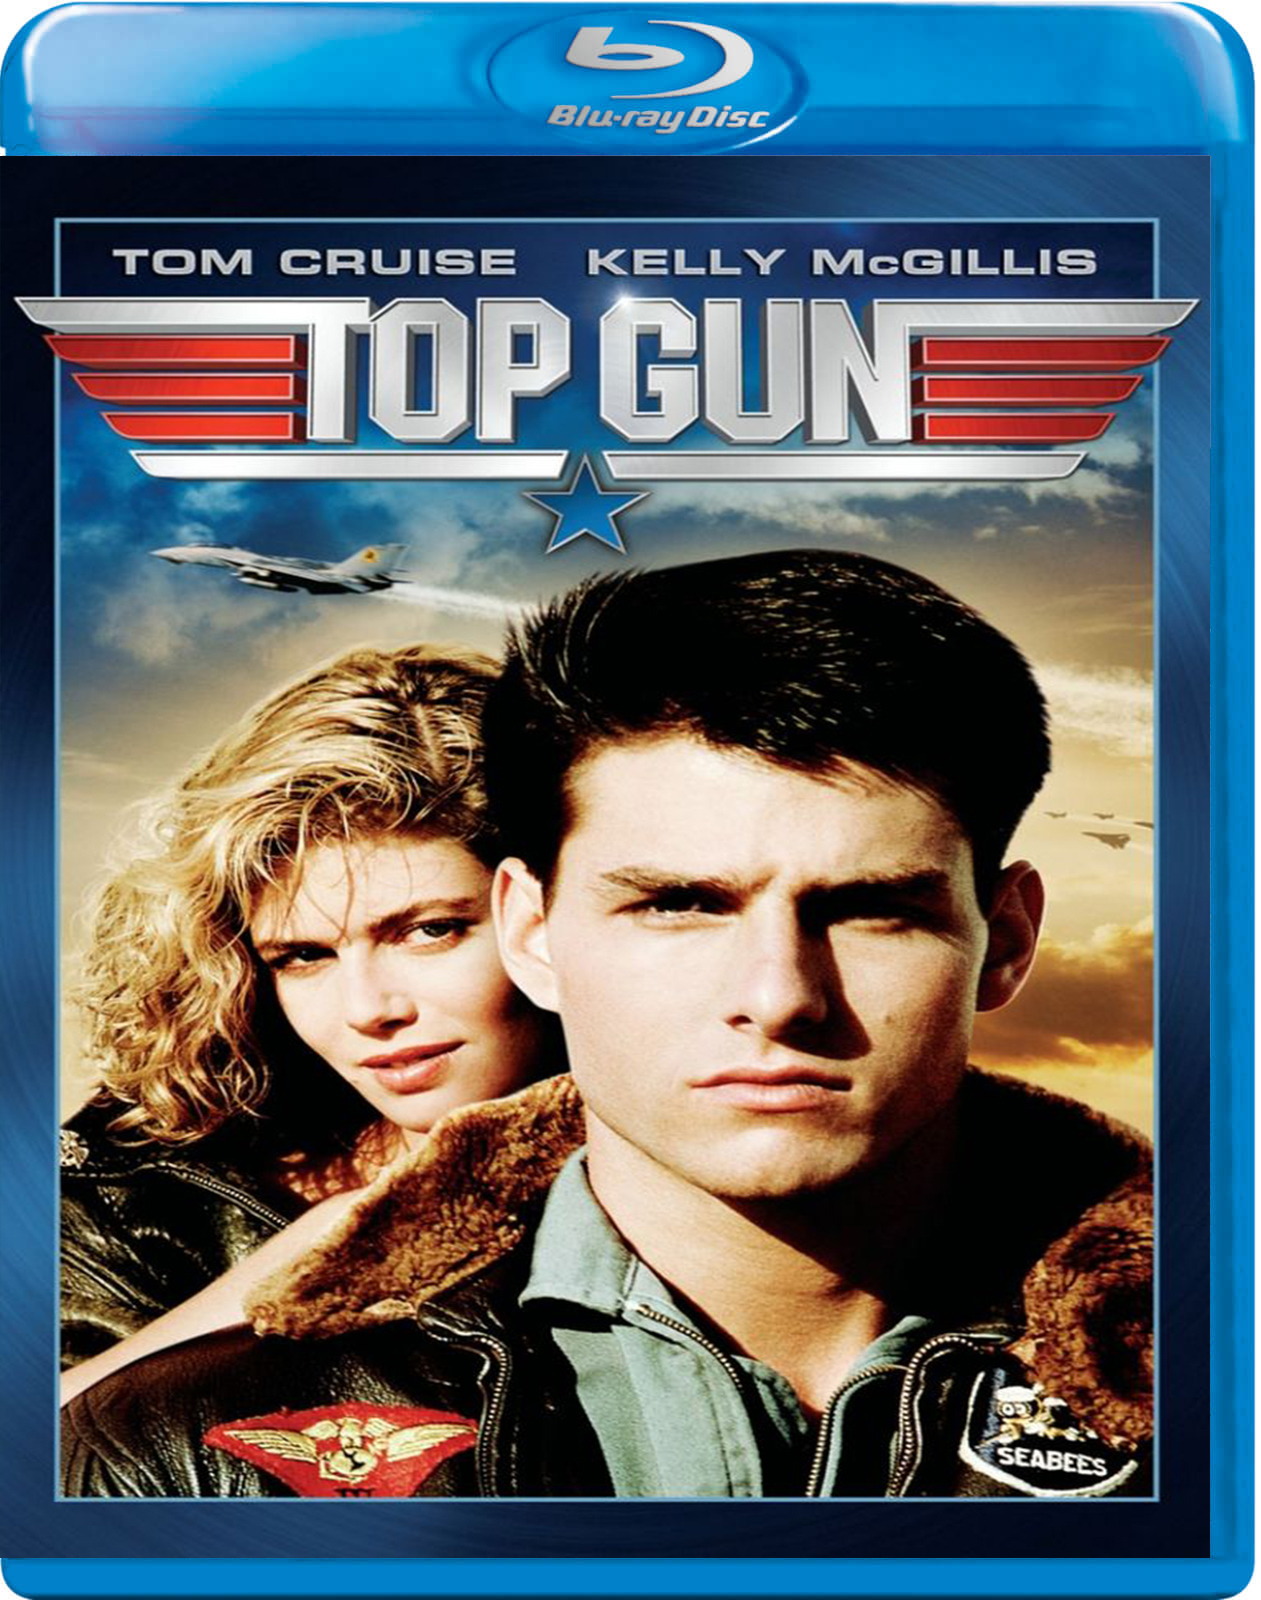 Top Gun [1986] [BD50] [Latino] [Remastered]